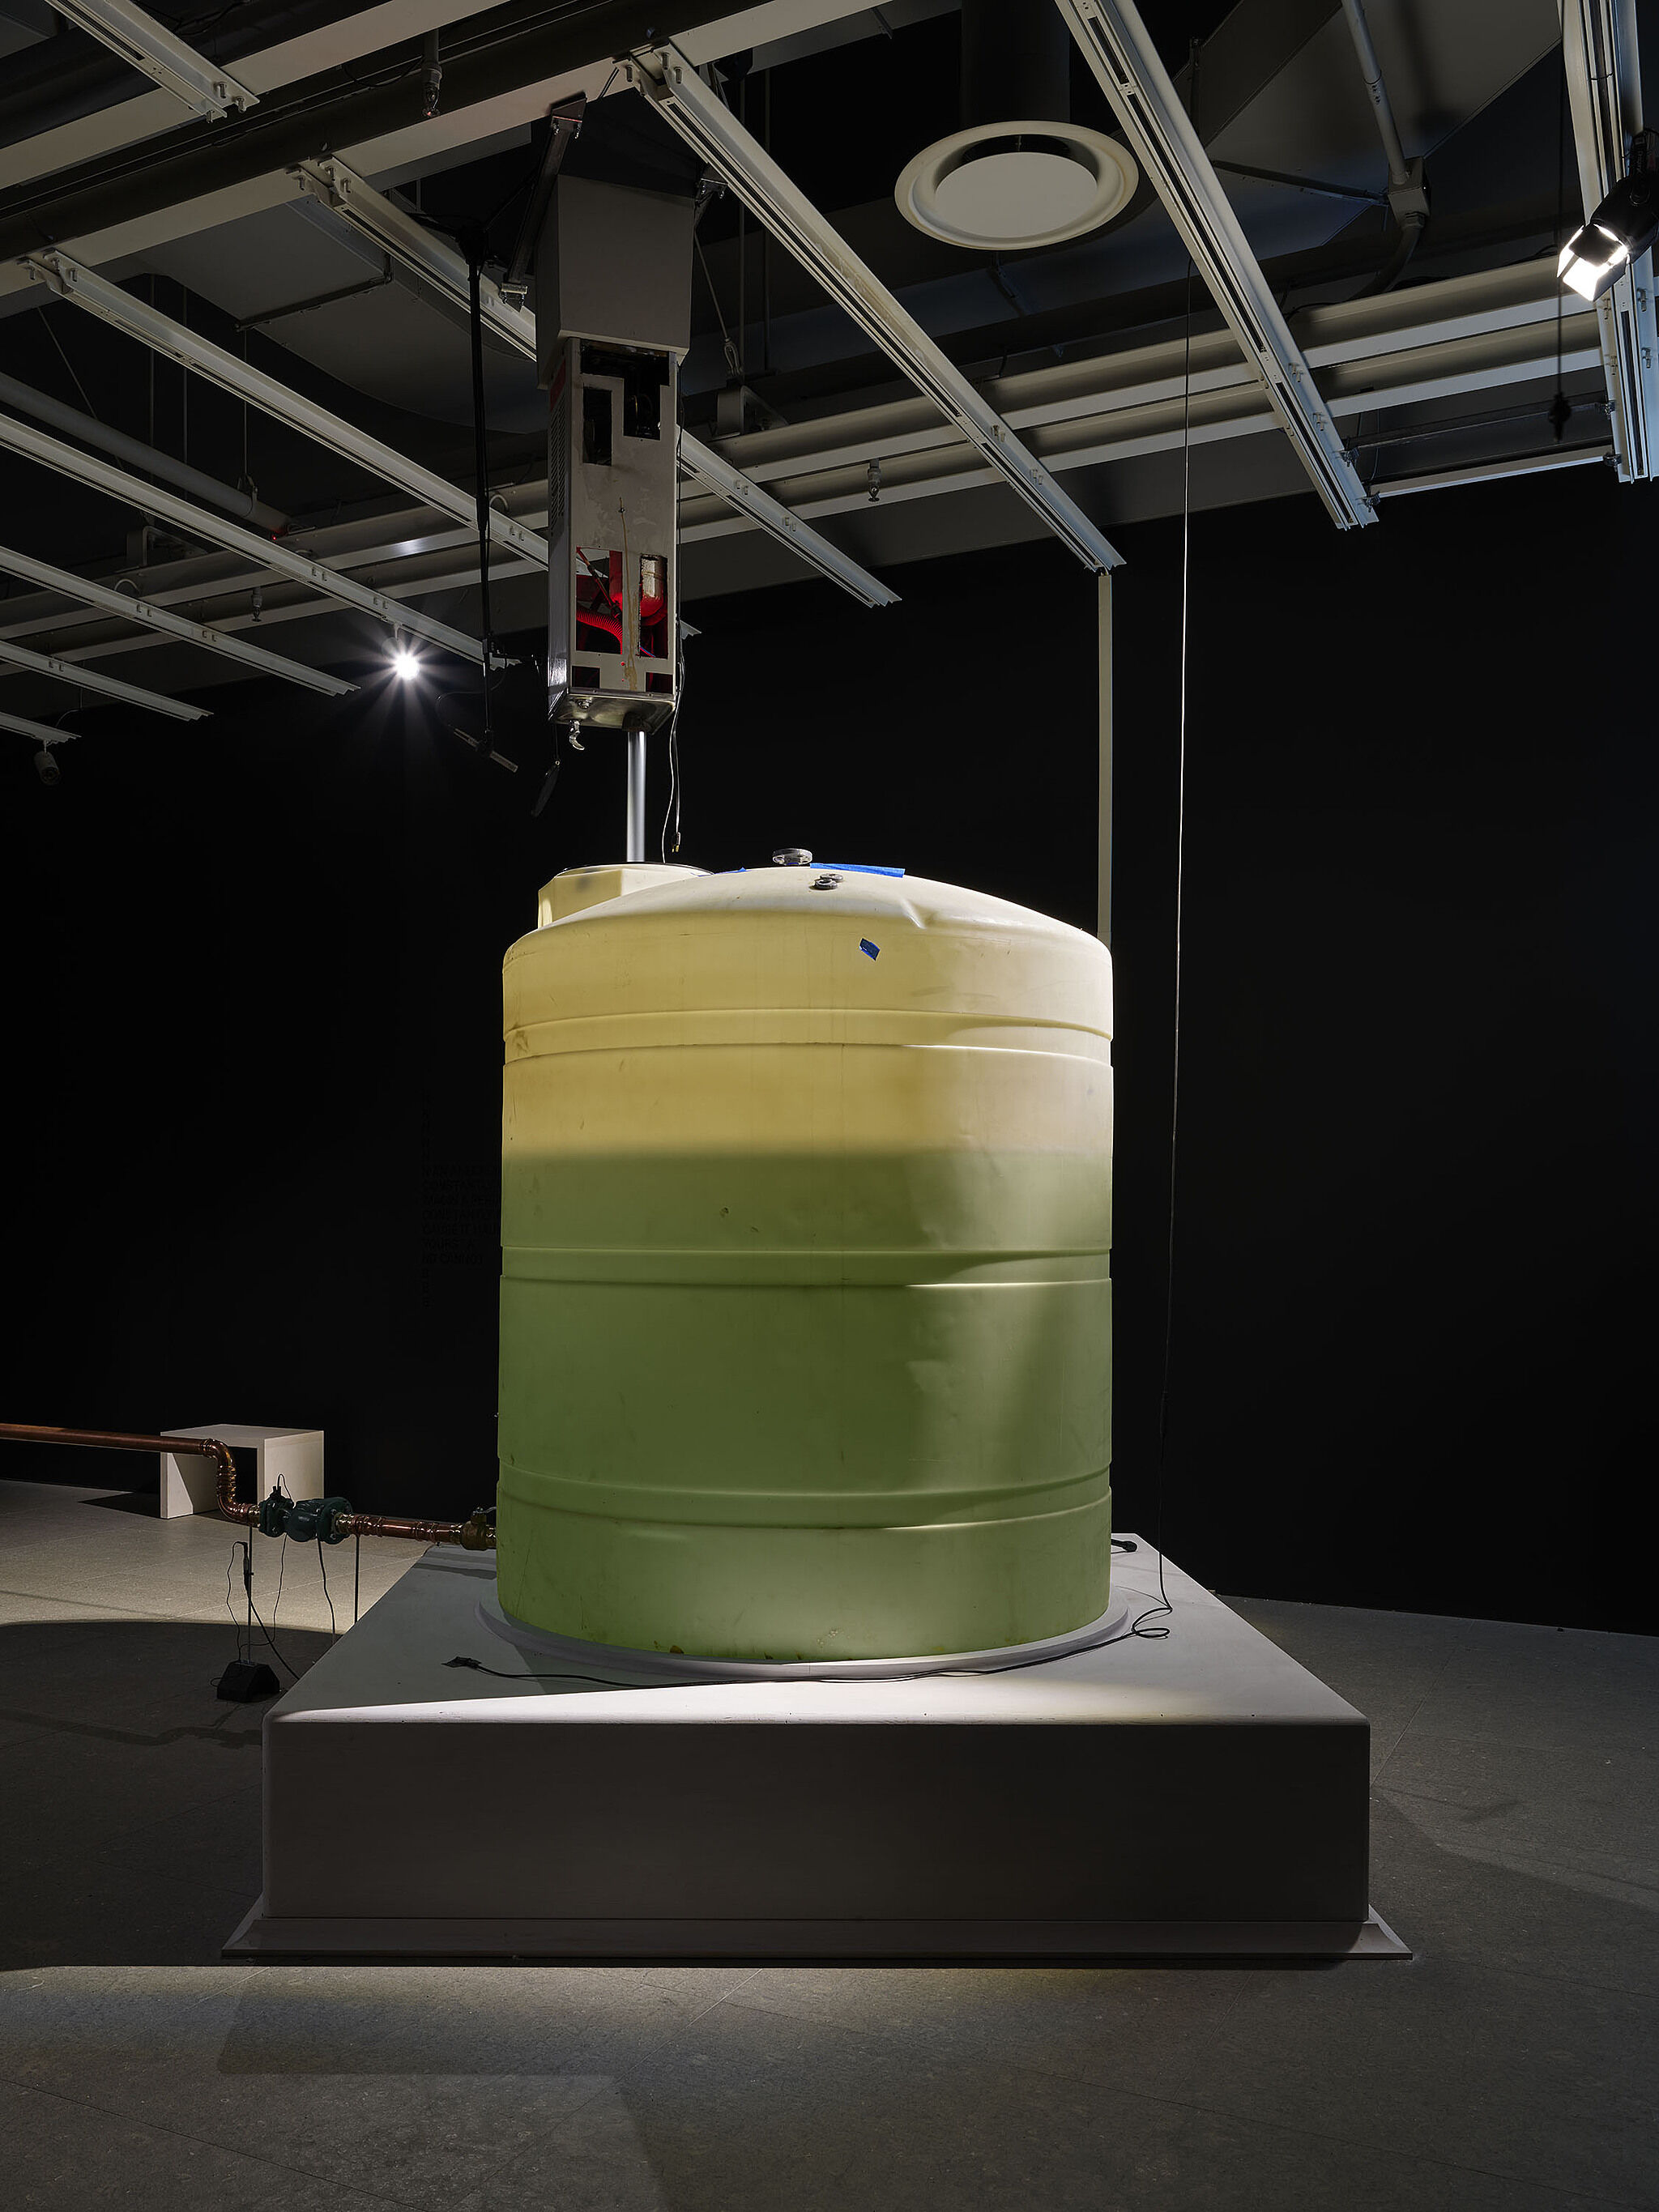 A large water tank in a dark room with pipes.